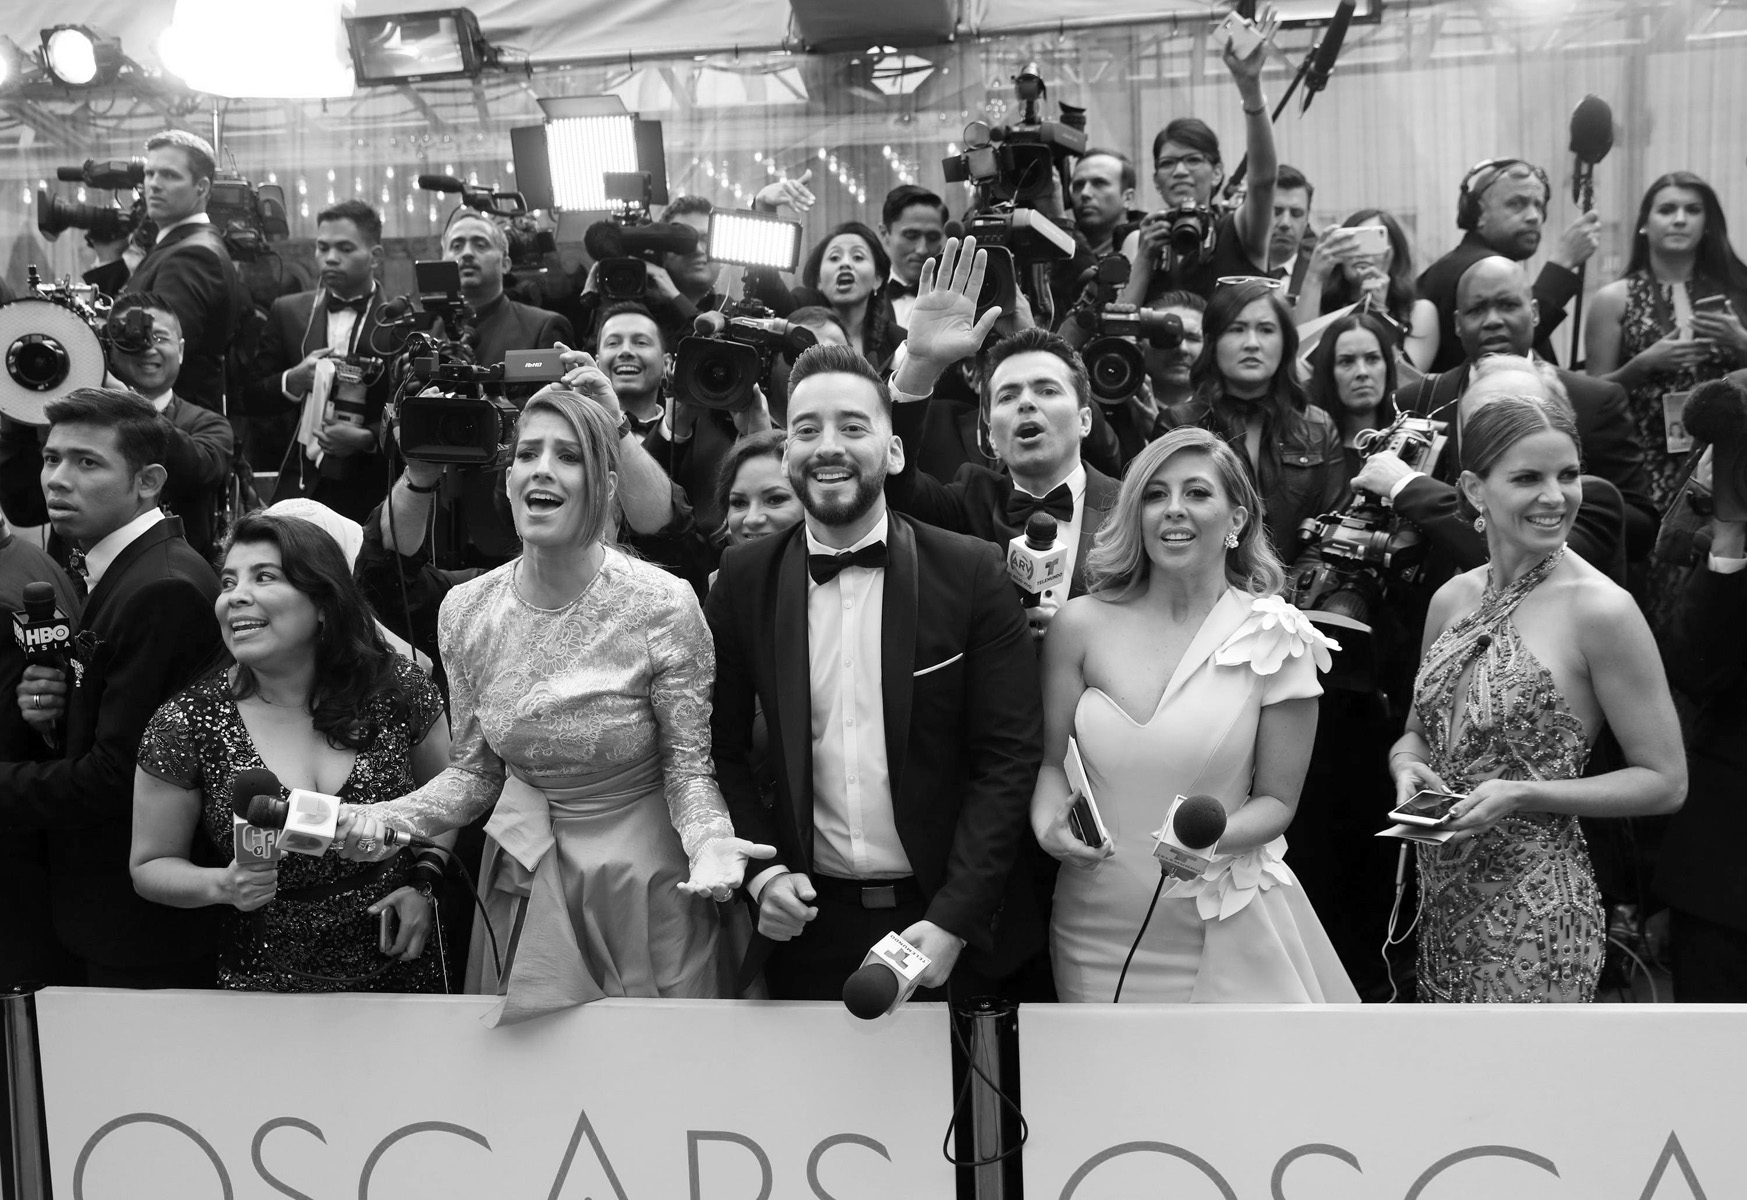 Members of the press react as guests arrive at the Oscars on Sunday, Feb. 26, 2017, at the Dolby Theatre in Los Angeles. (Photo by Matt Sayles/Invision/AP)